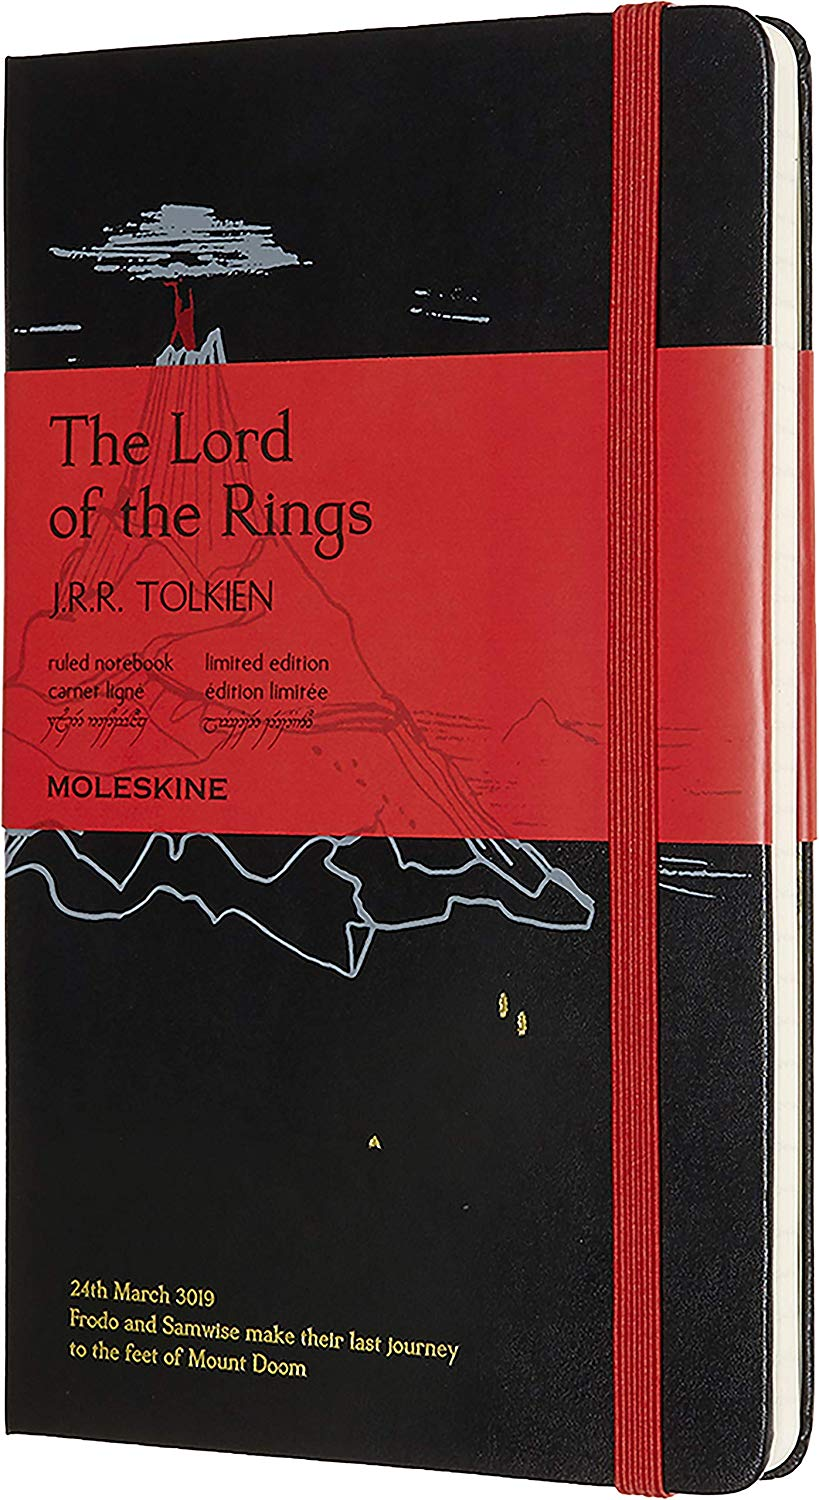 Moleskine Limited Edition Lord Of The Rings Notebook